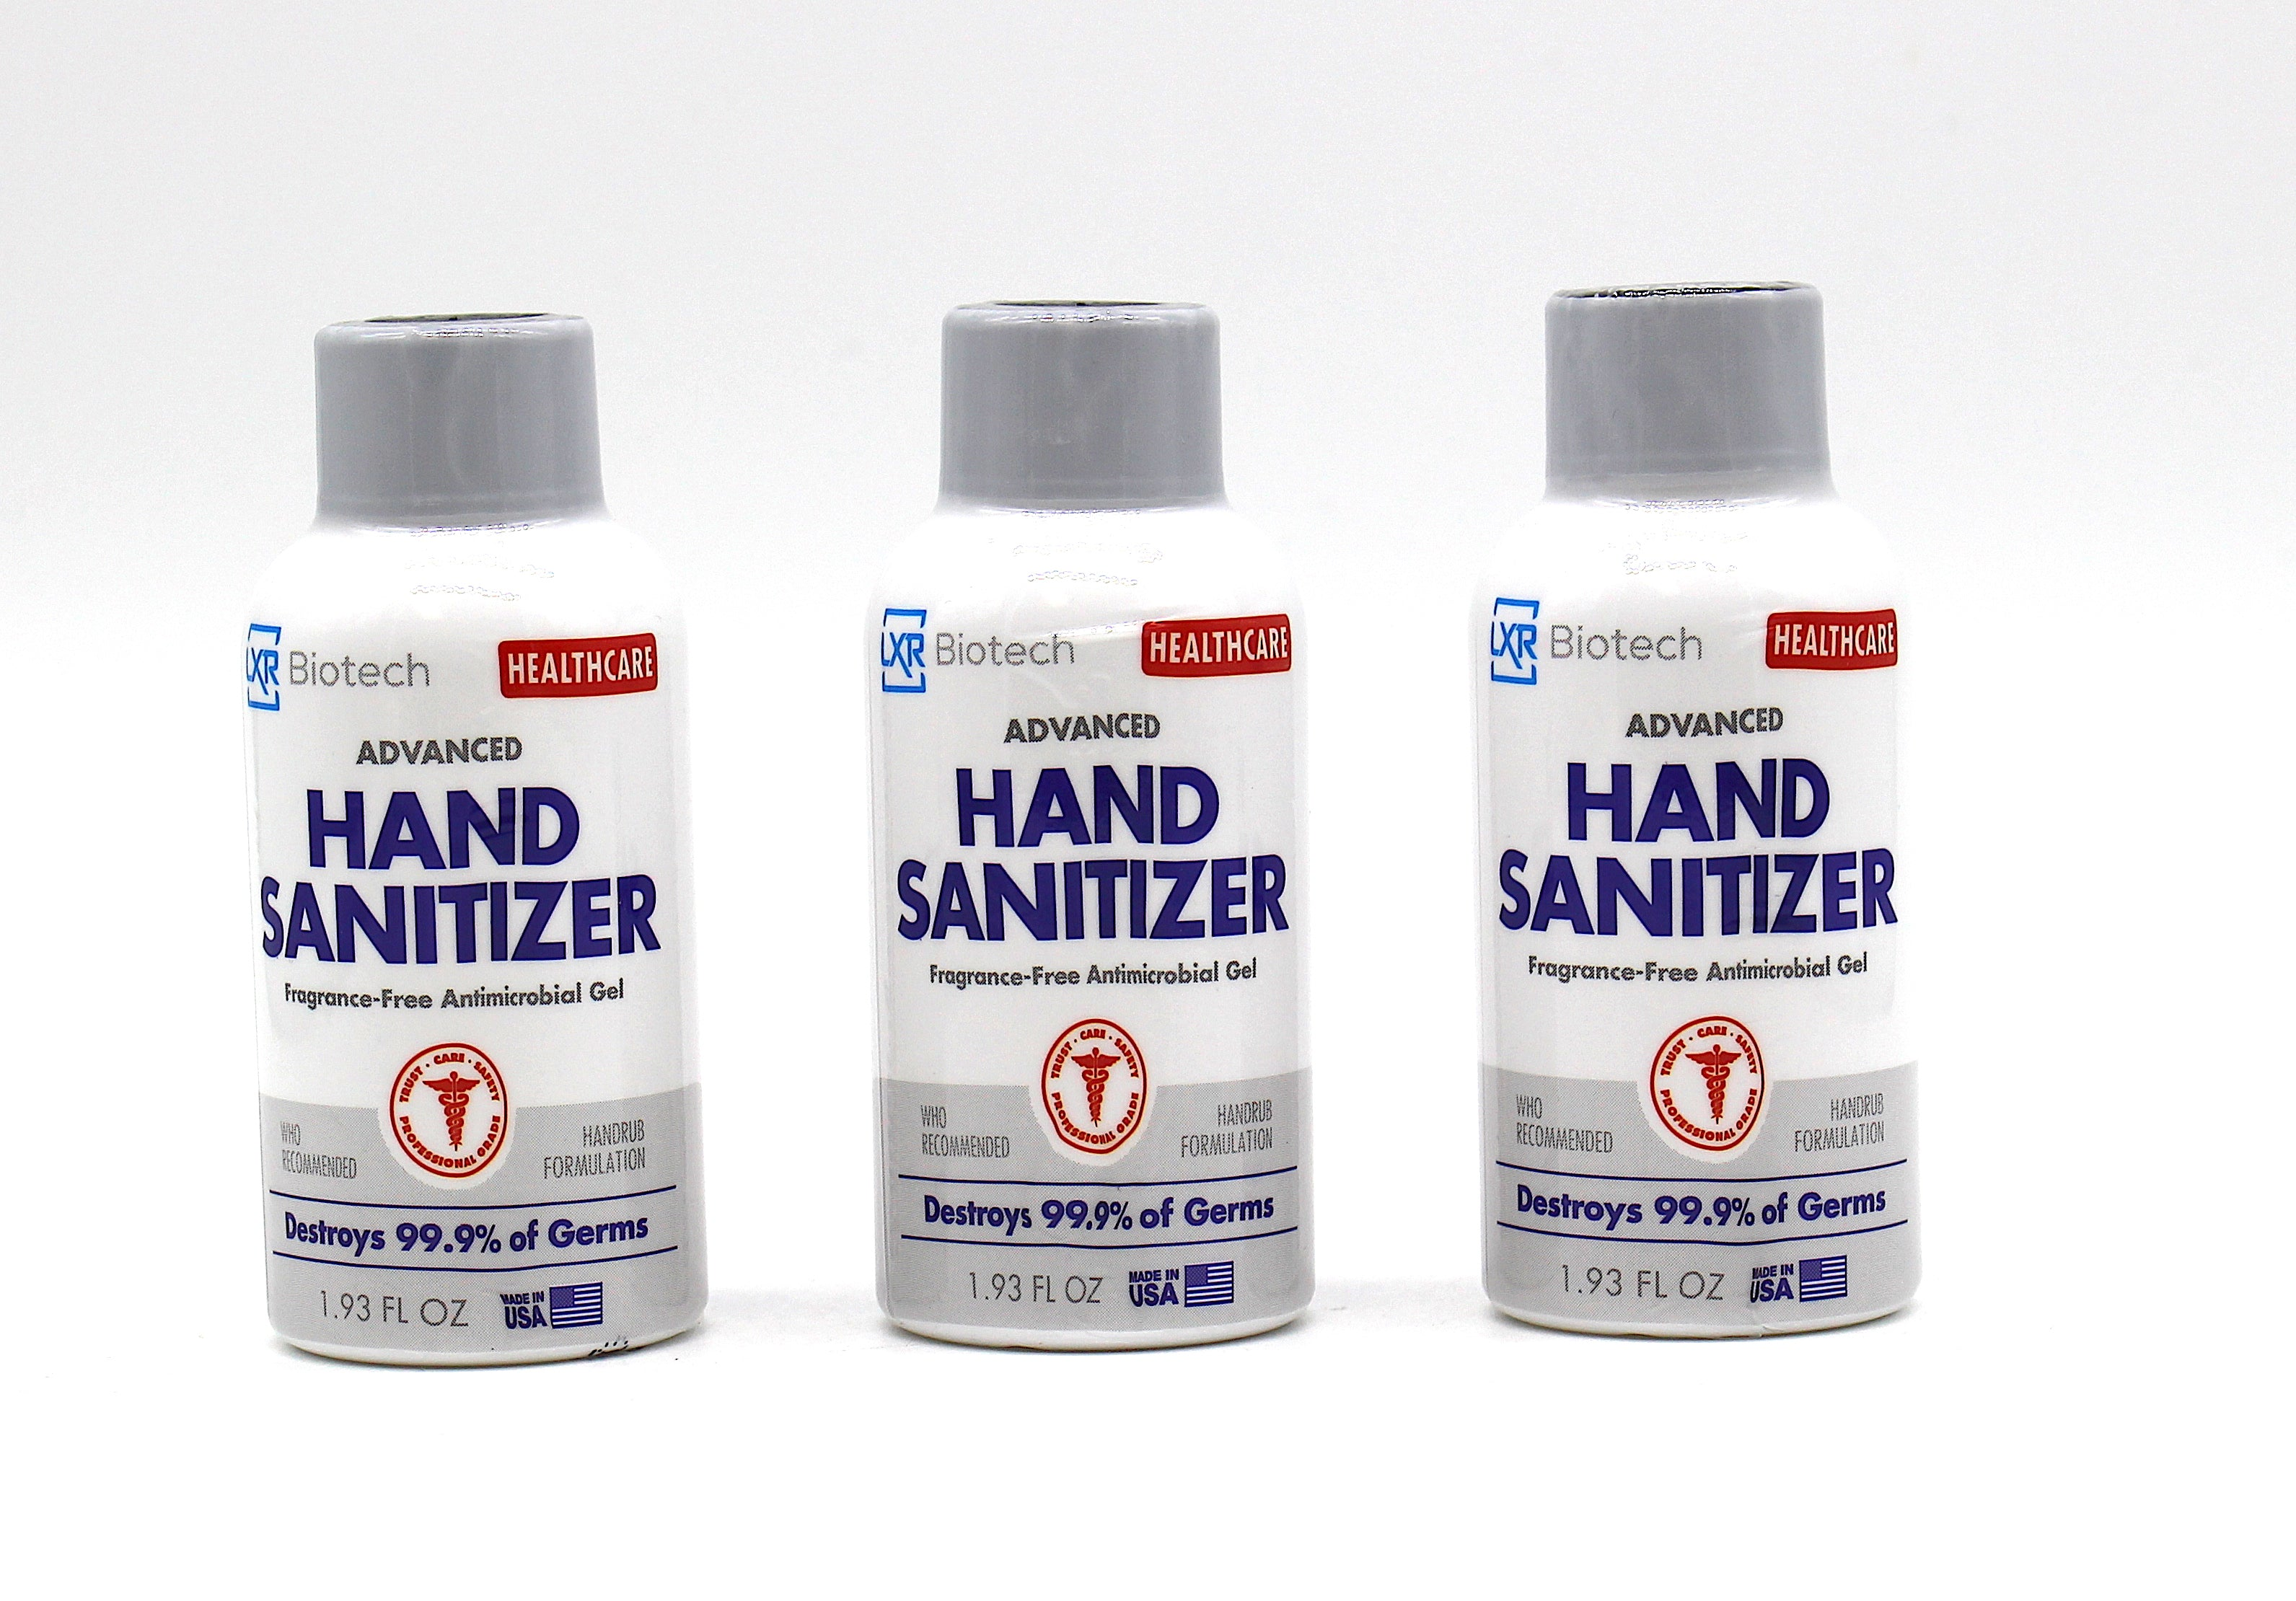 LXR Biotech Hand Sanitizer 1.93 FL OZ ( Display of 24 Bottles)